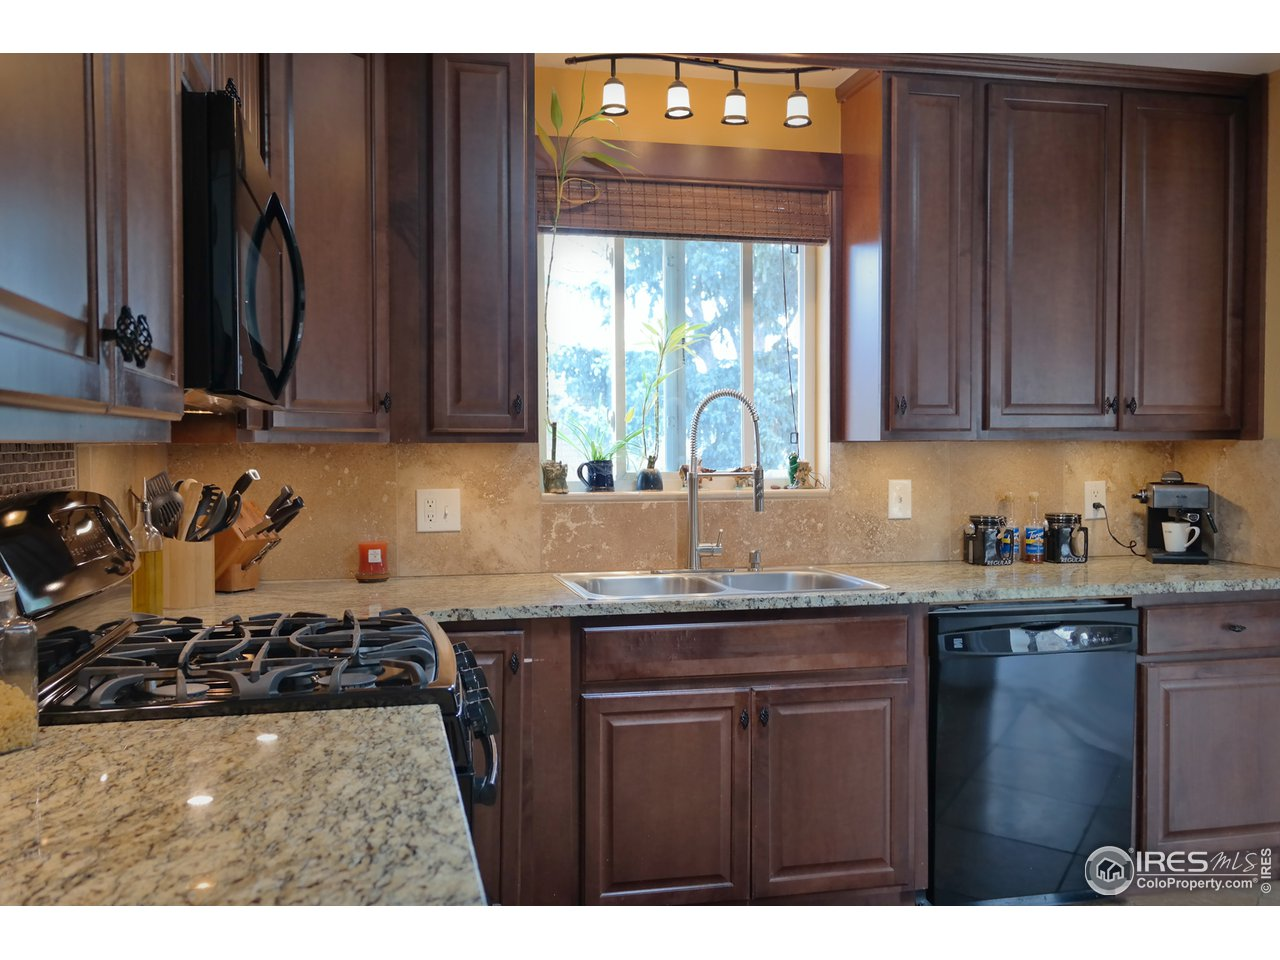 Newer Cabinets, Granite & Tile Backsplash